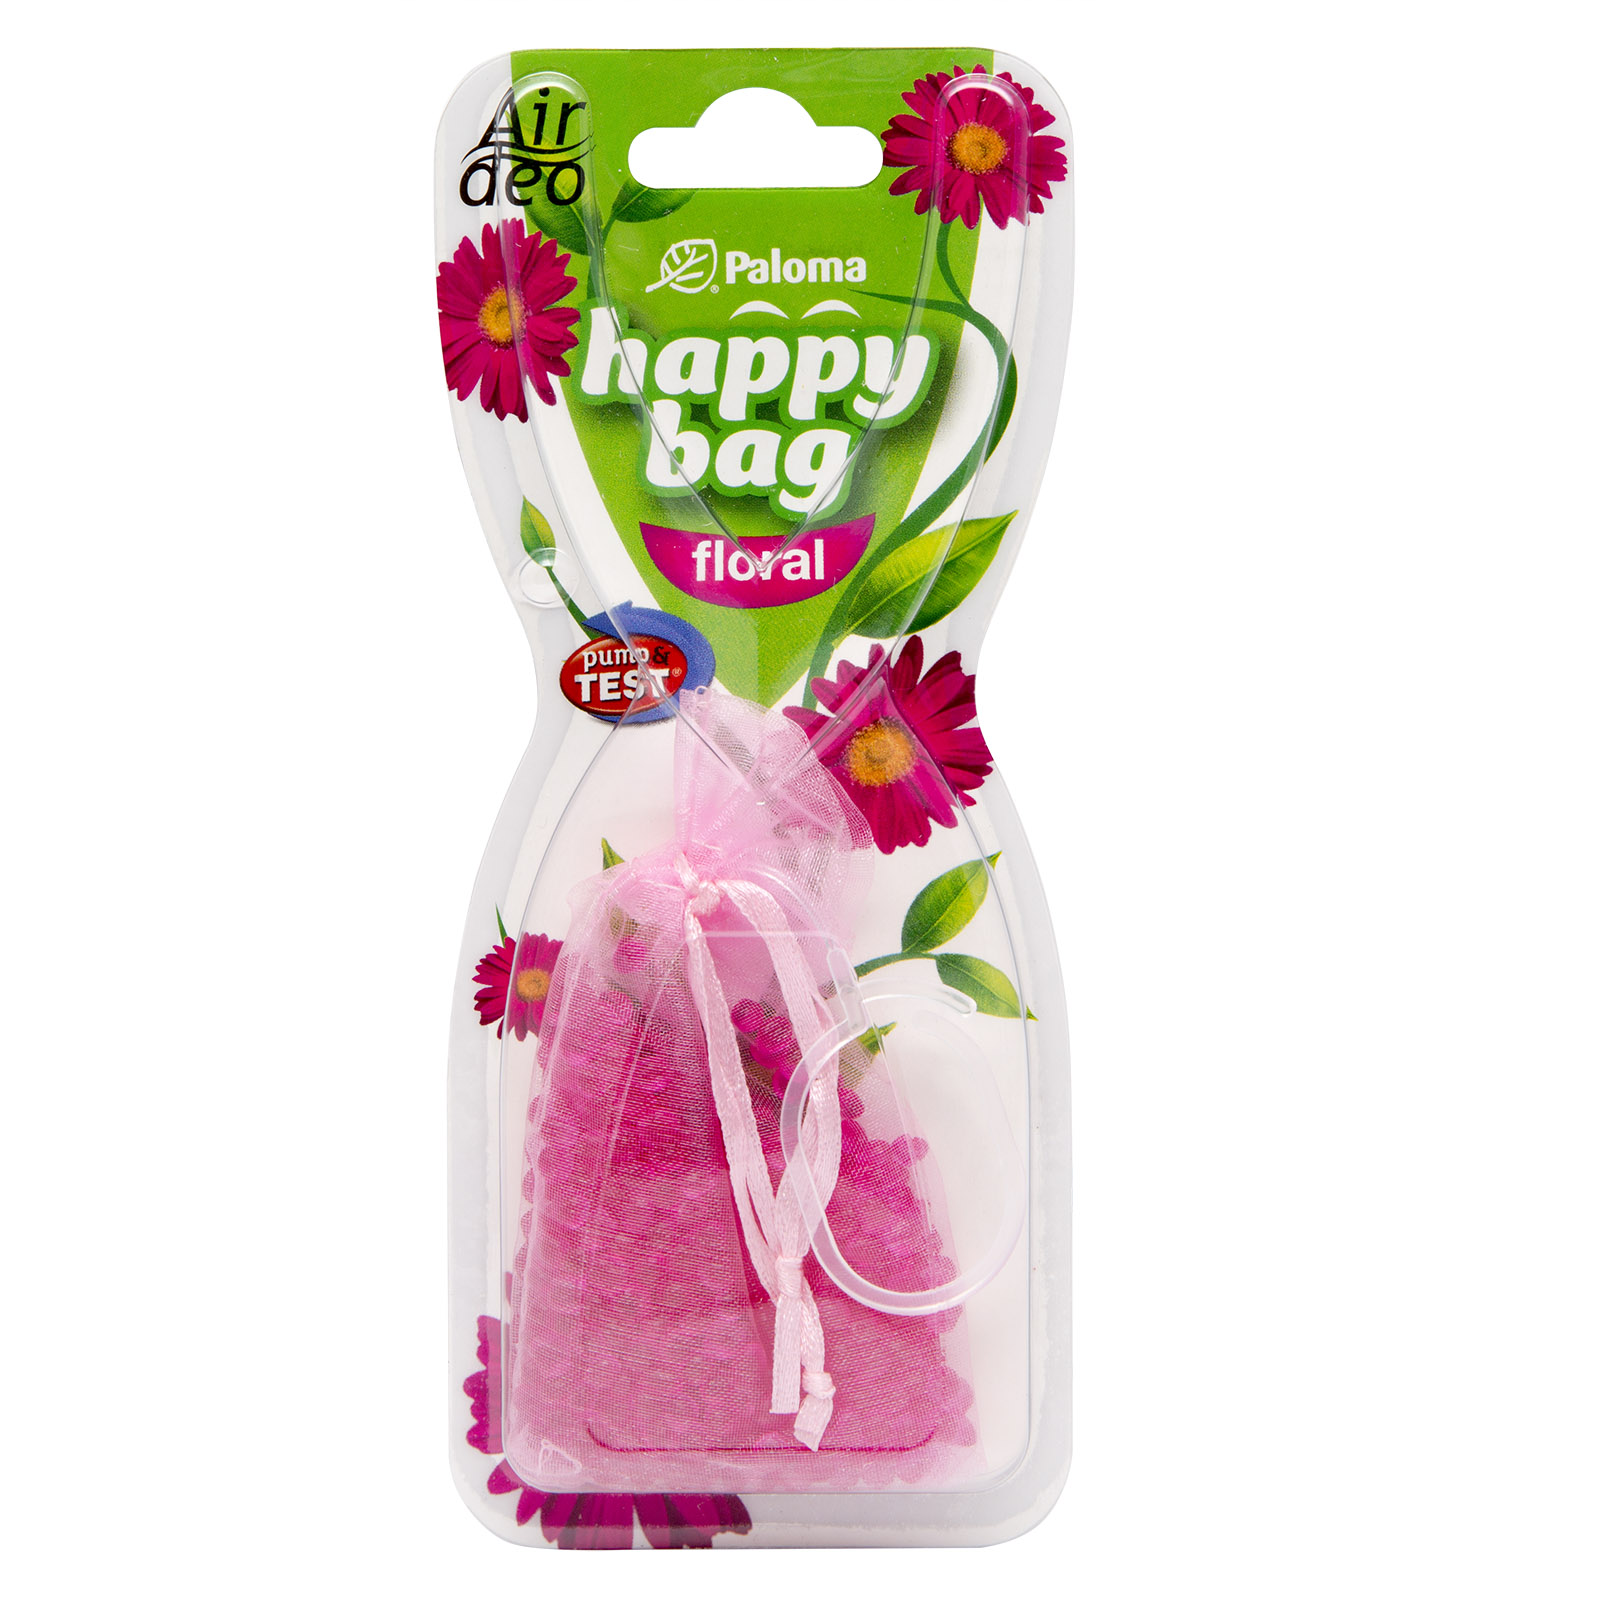 Illatosító Paloma Happy Bag Floral